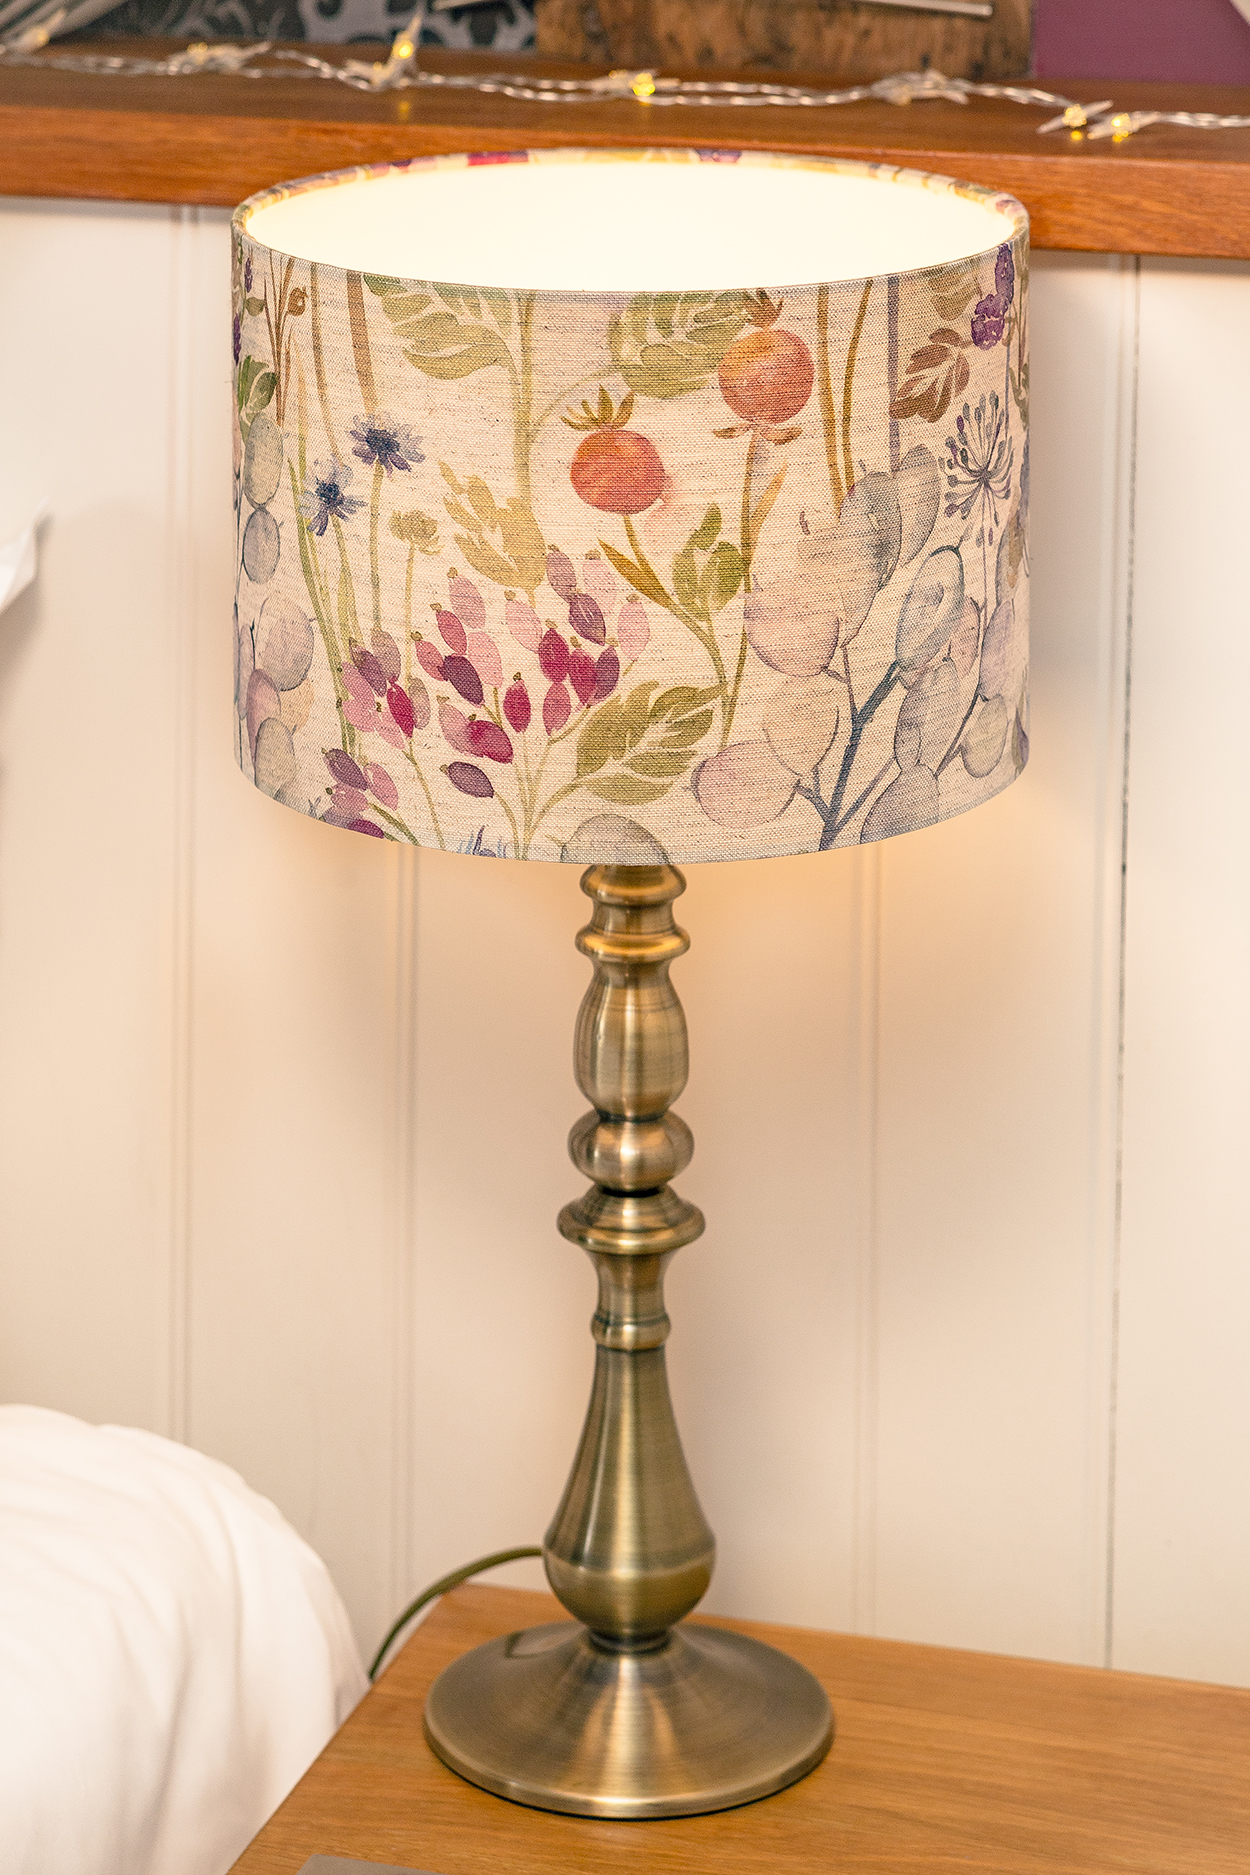 Close-up of table lamp